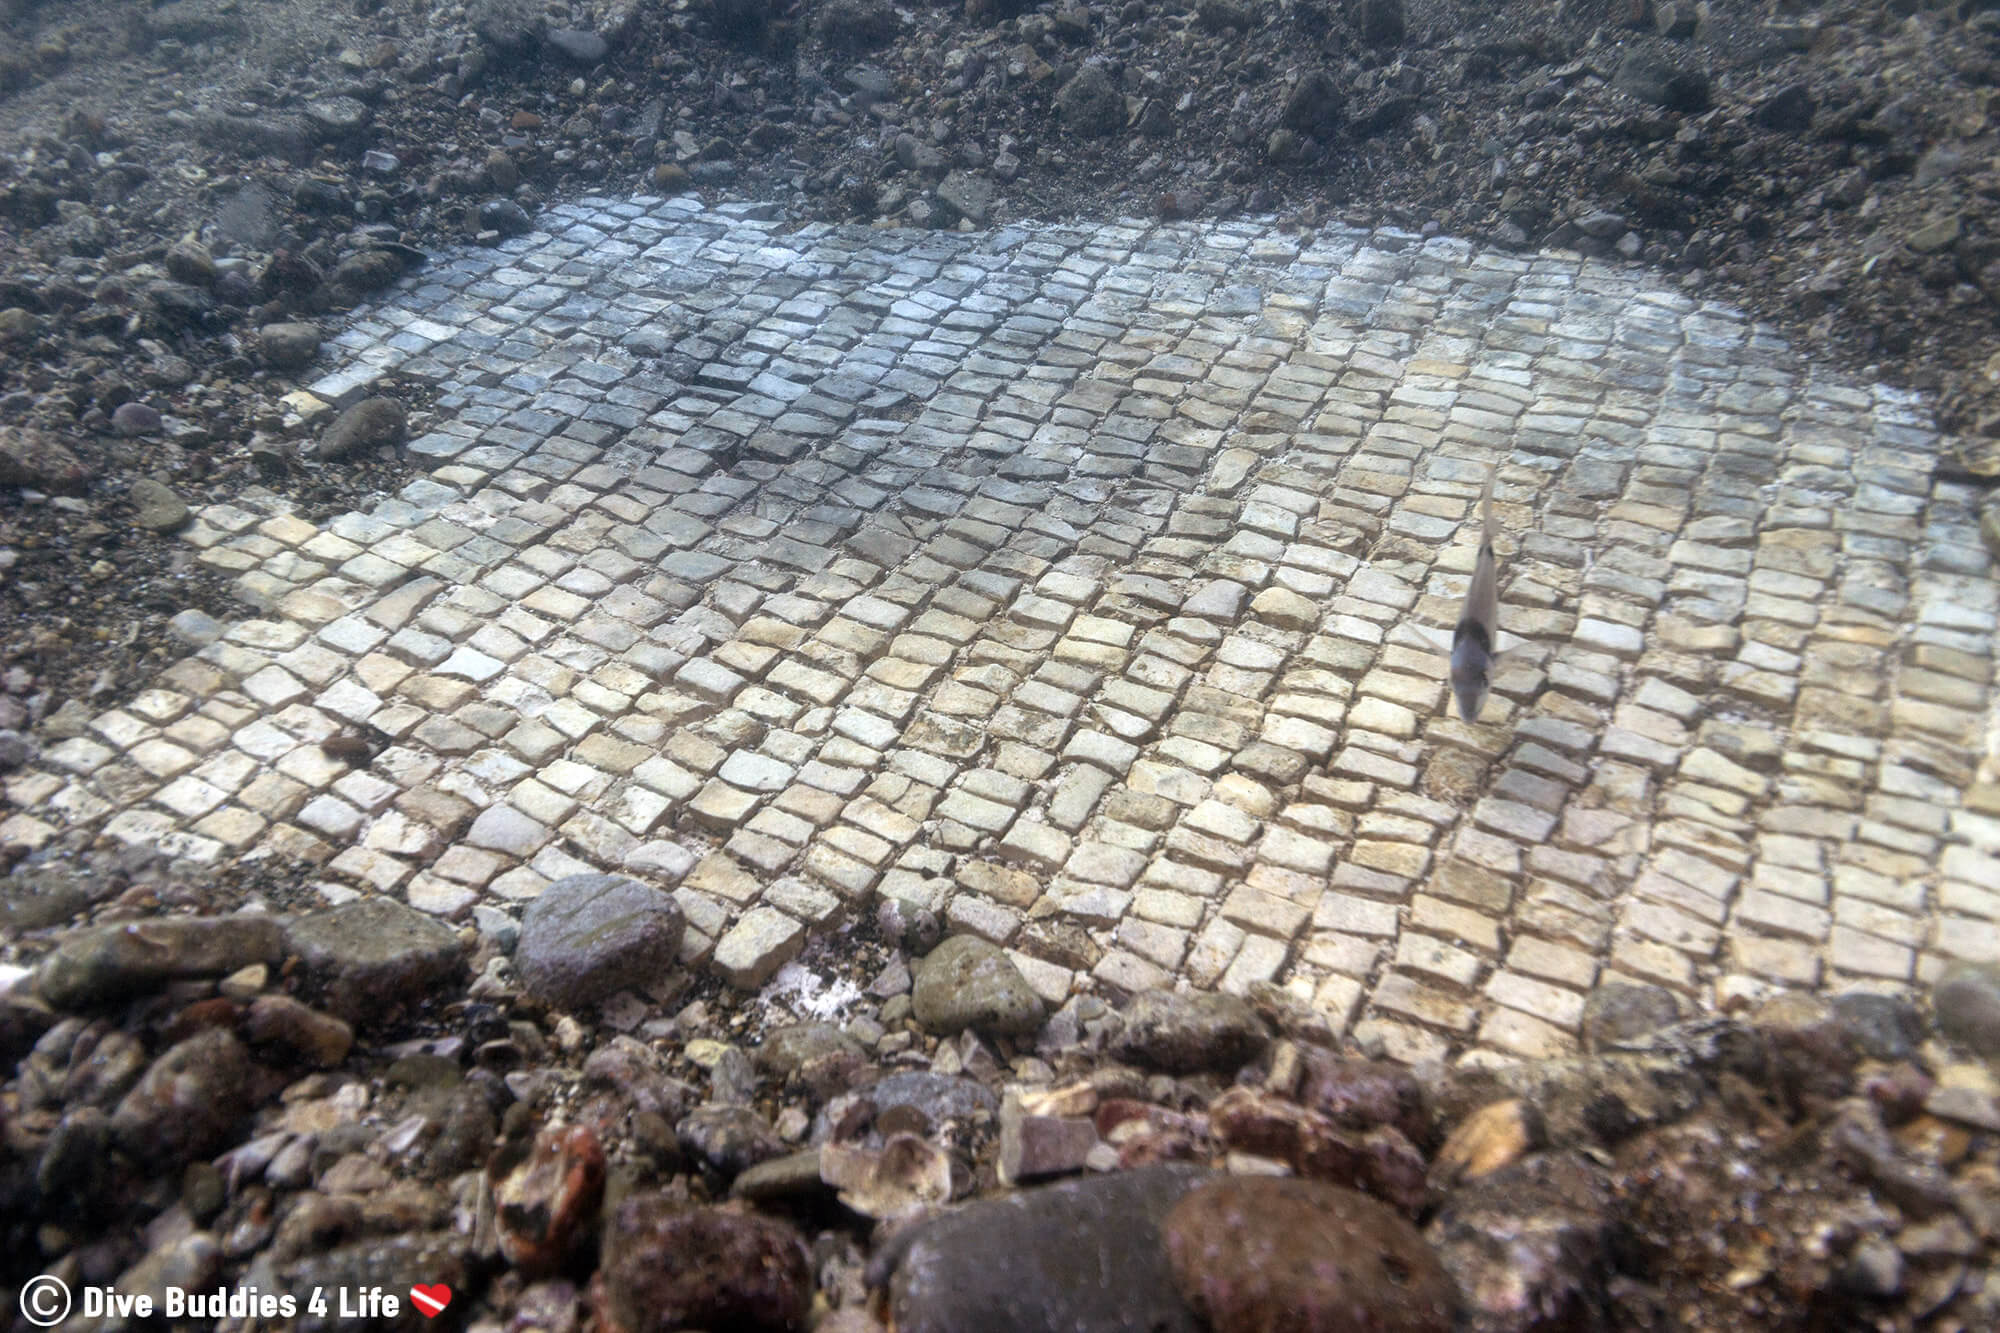 Another View Of Some Floor Mosaic From The Ancient Submerged City Of Baiae In Naples, Italy, Europe